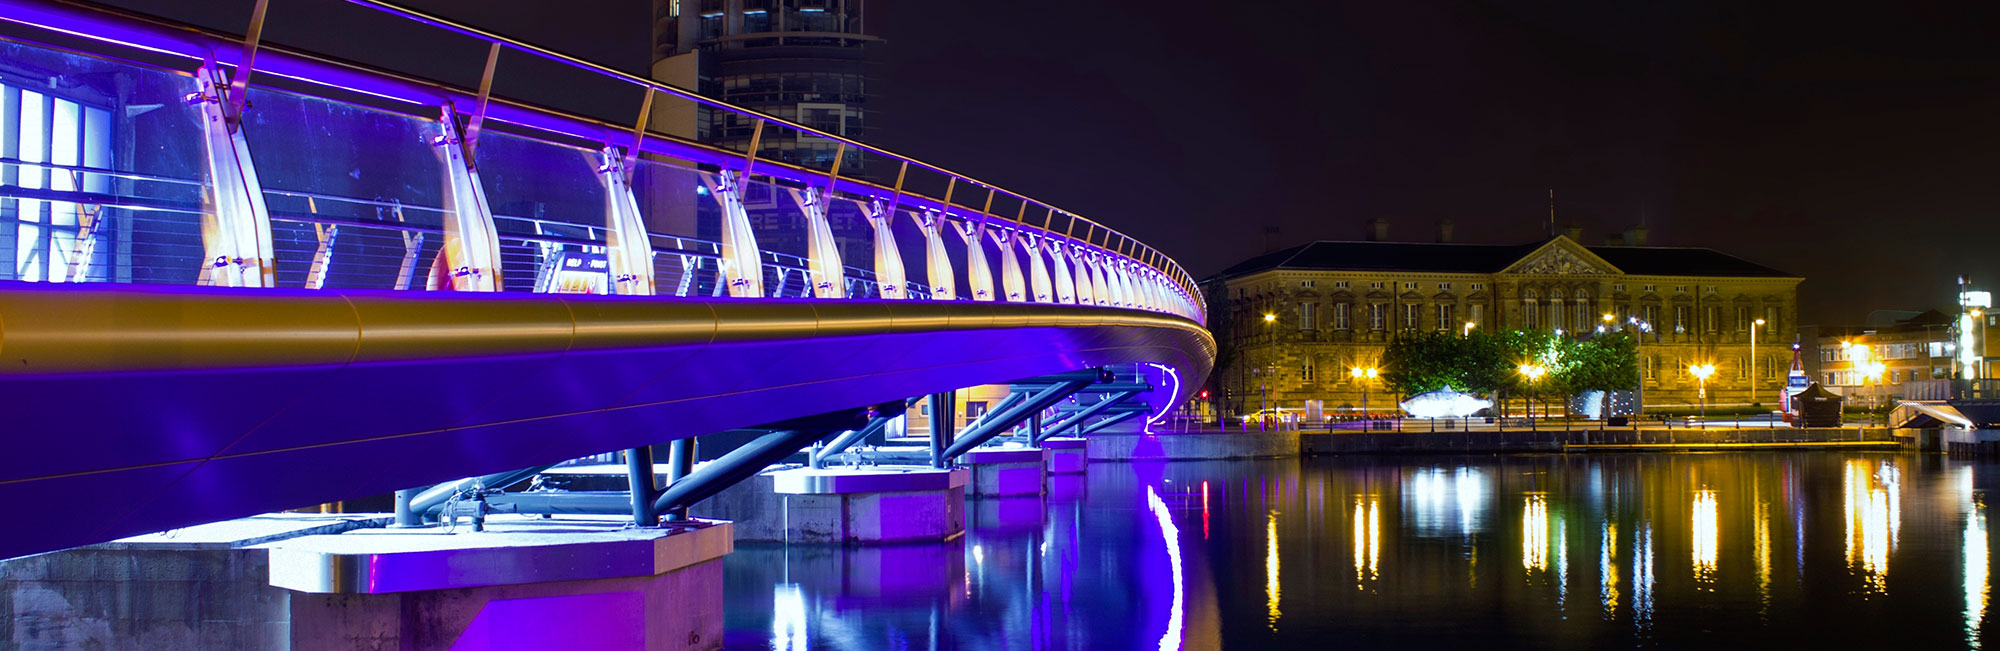 Lagan Foot Bridge, Belfast